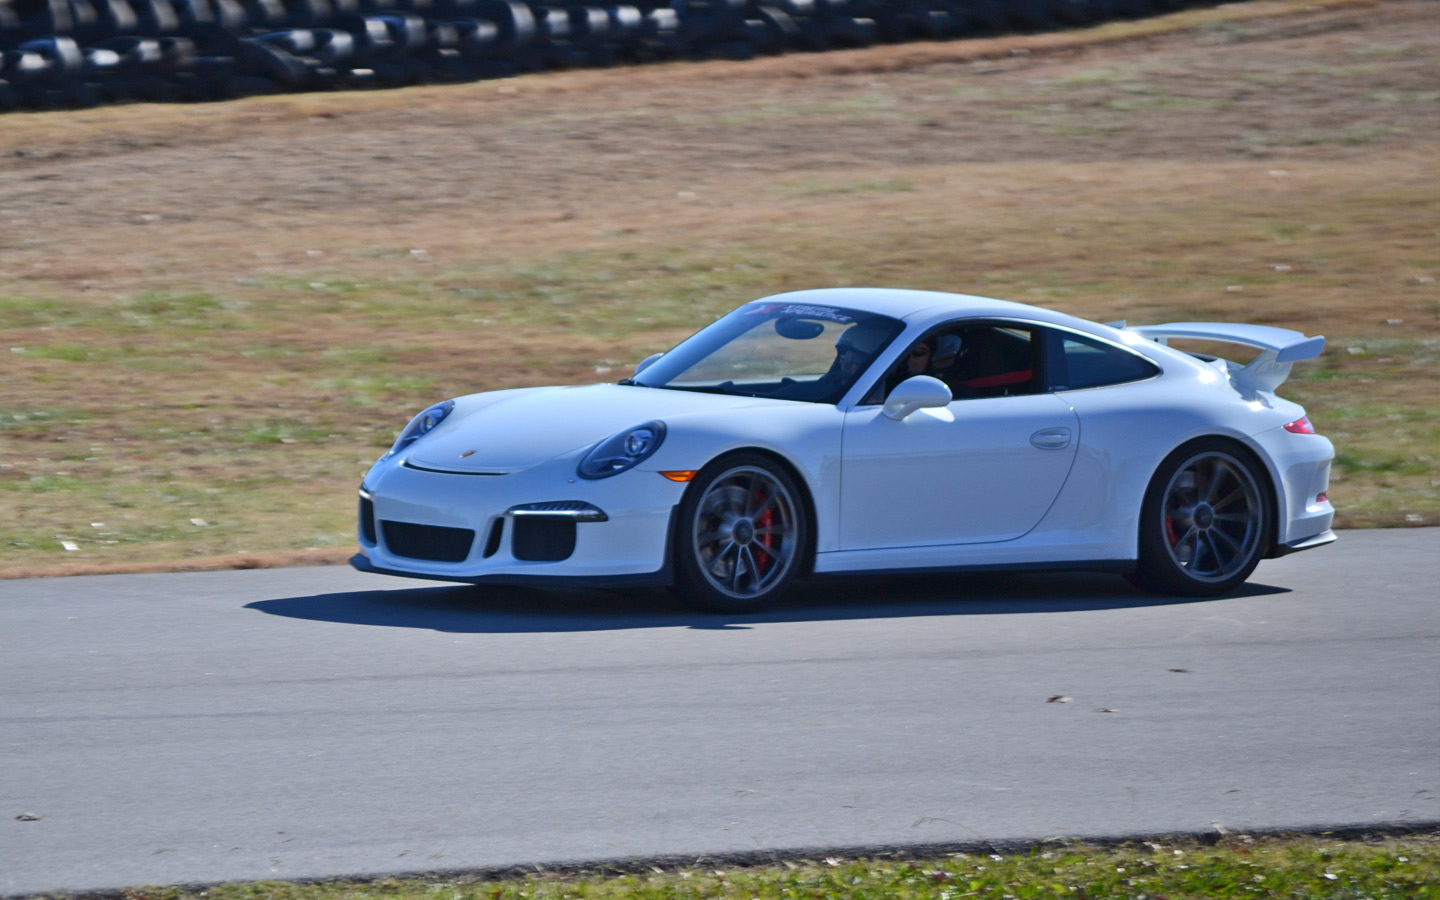 Porsche GT3 Driving Experience Review - Zero To 60 Times